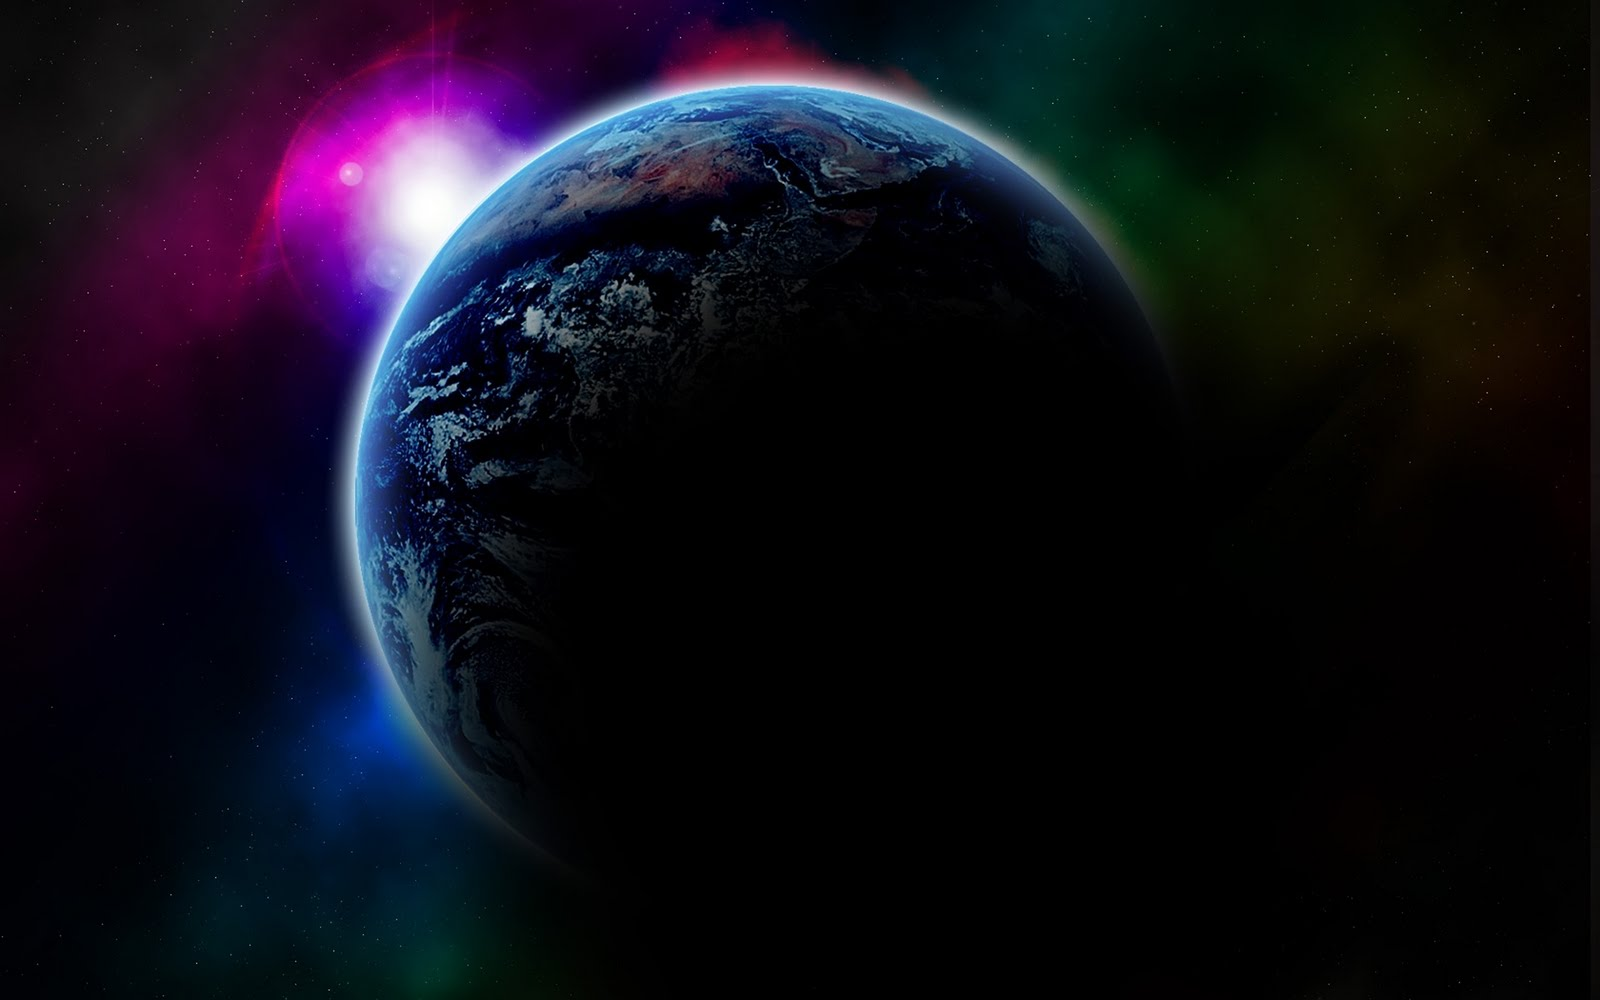 Love u wallpapers 3d space background for Wallpaper 3d wallpaper